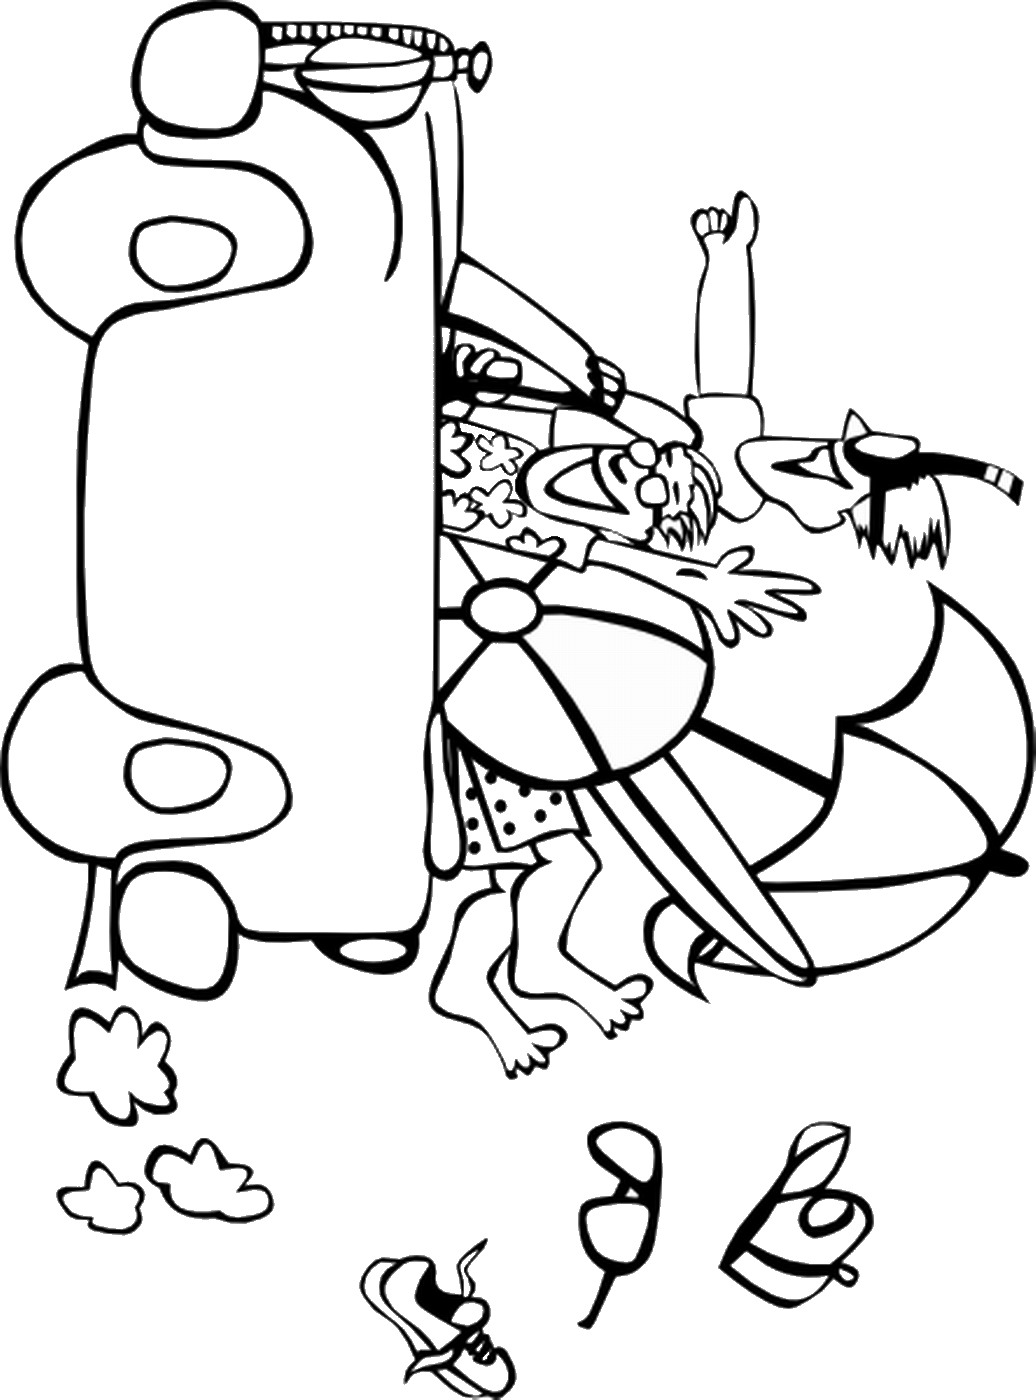 summer holiday coloring pages summer holiday coloring pages coloring holiday pages summer